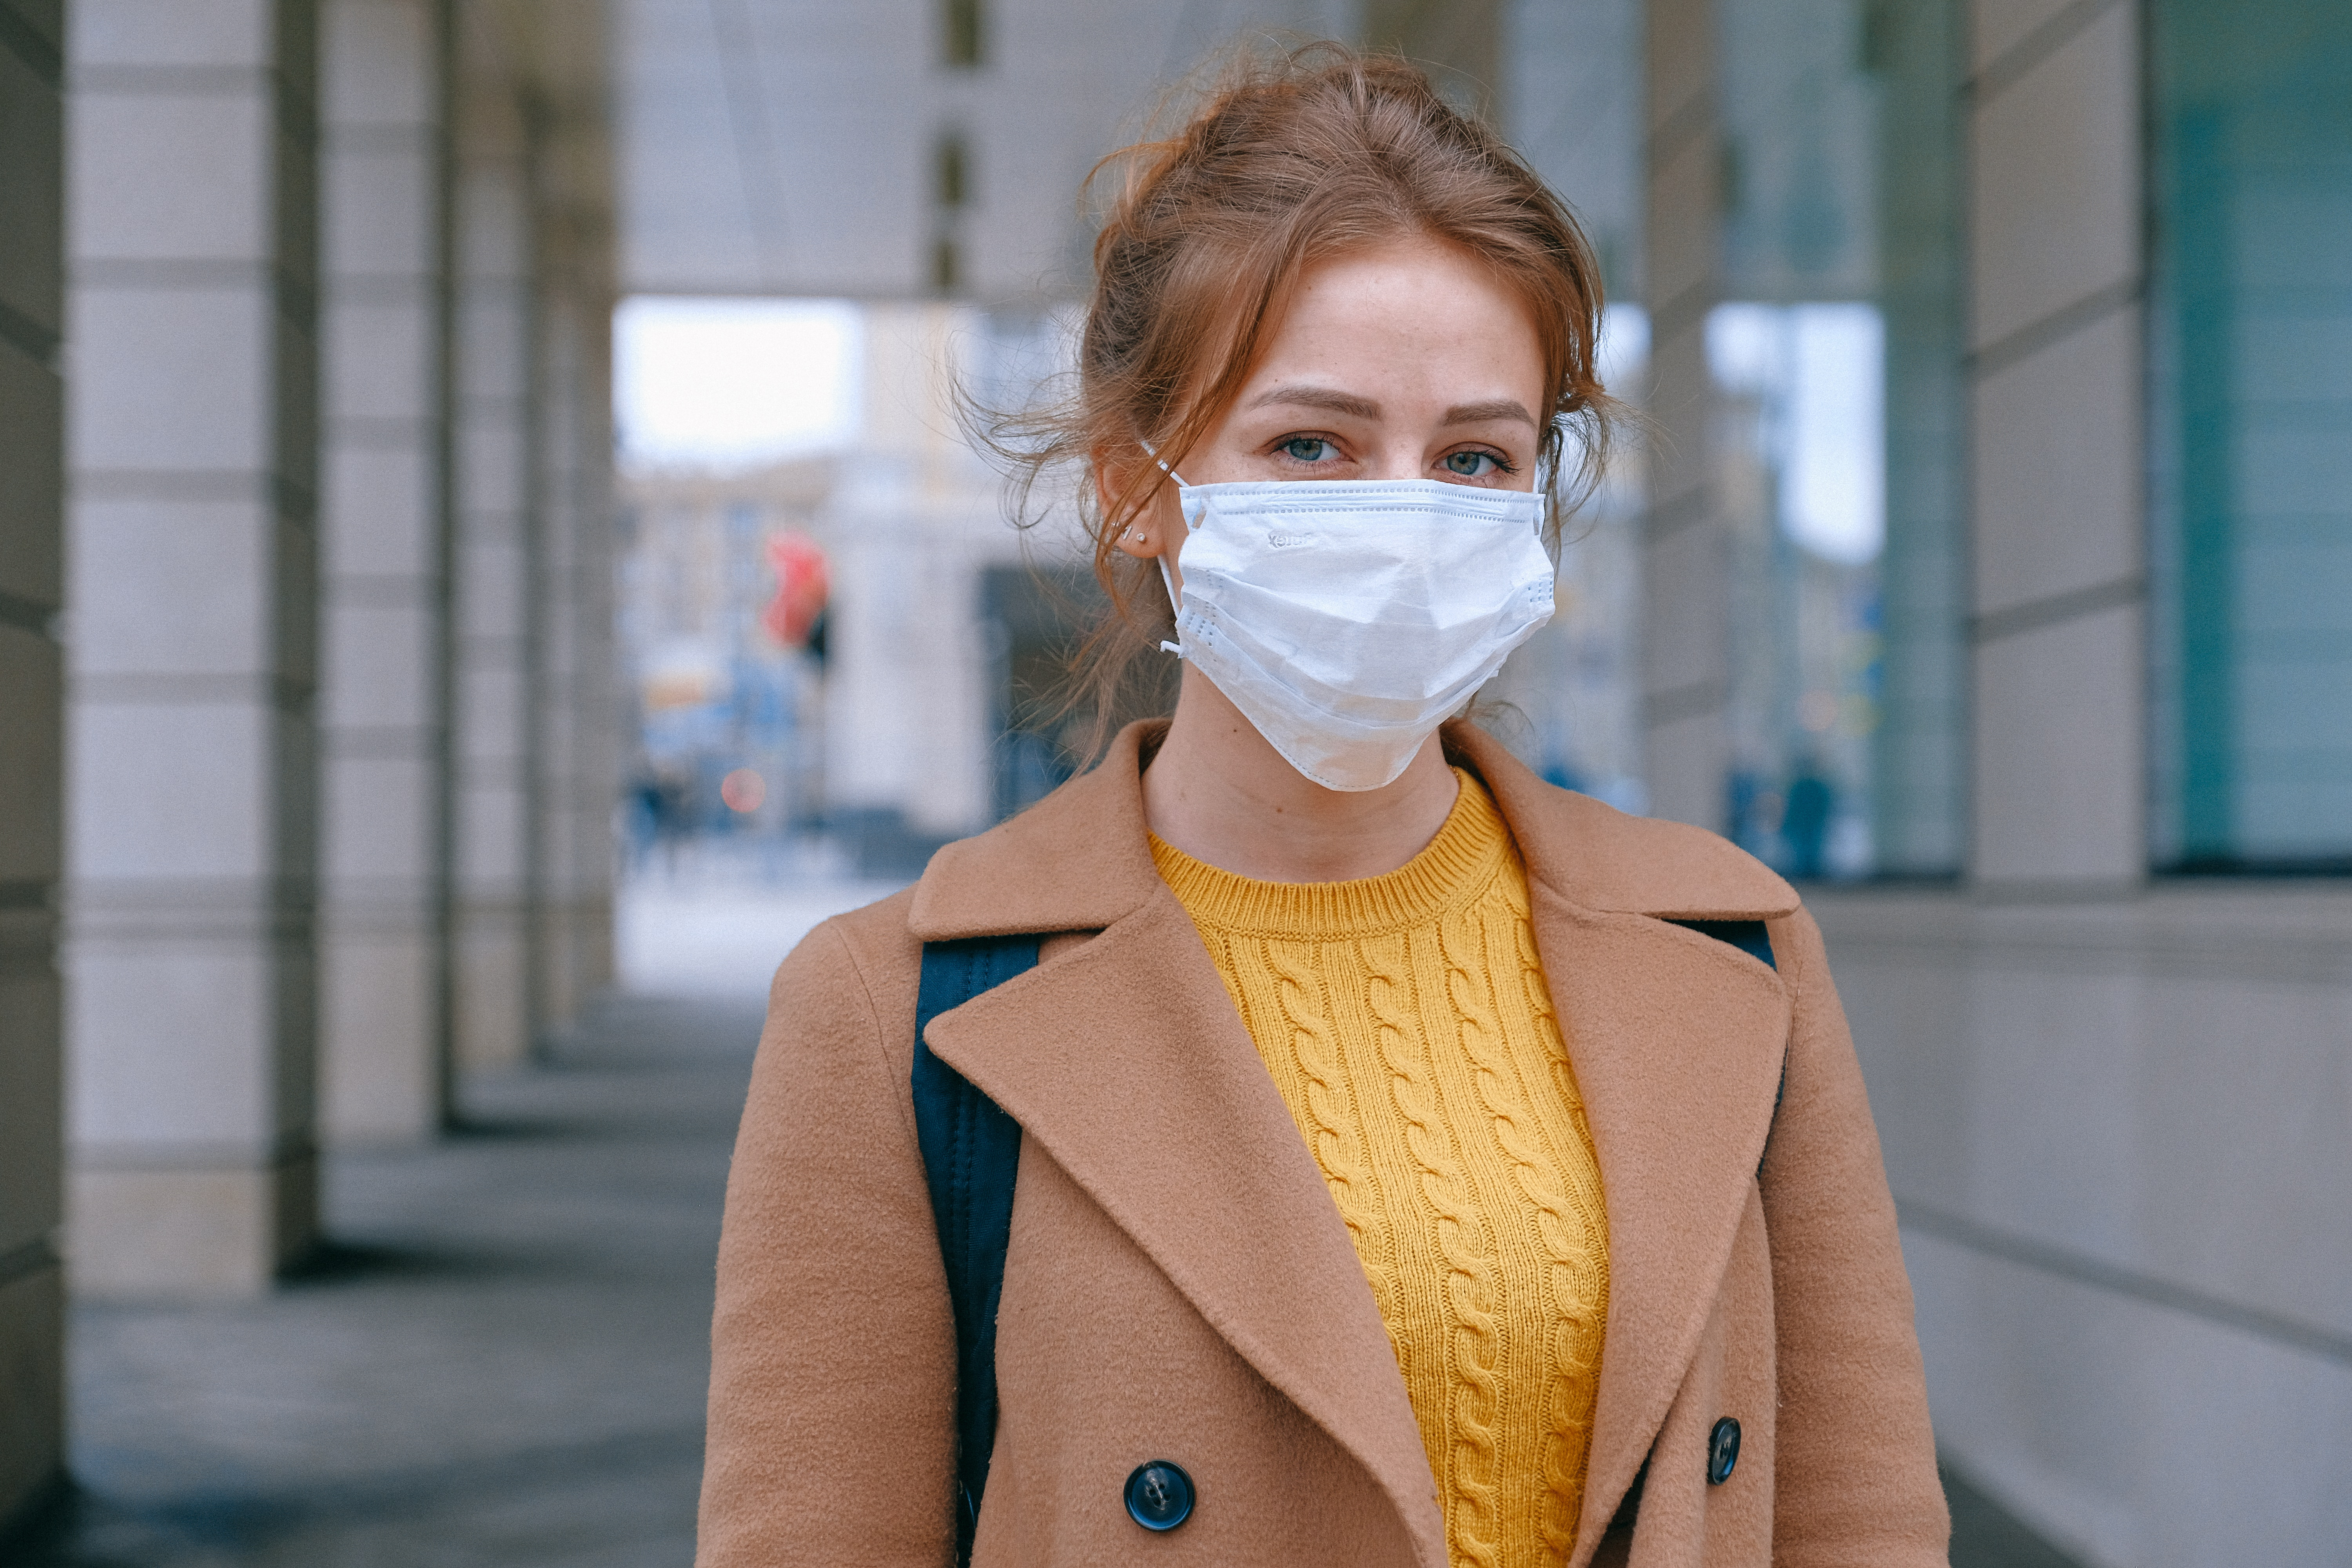 A woman in front of a bank or credit union wearing mask because of Covid-19